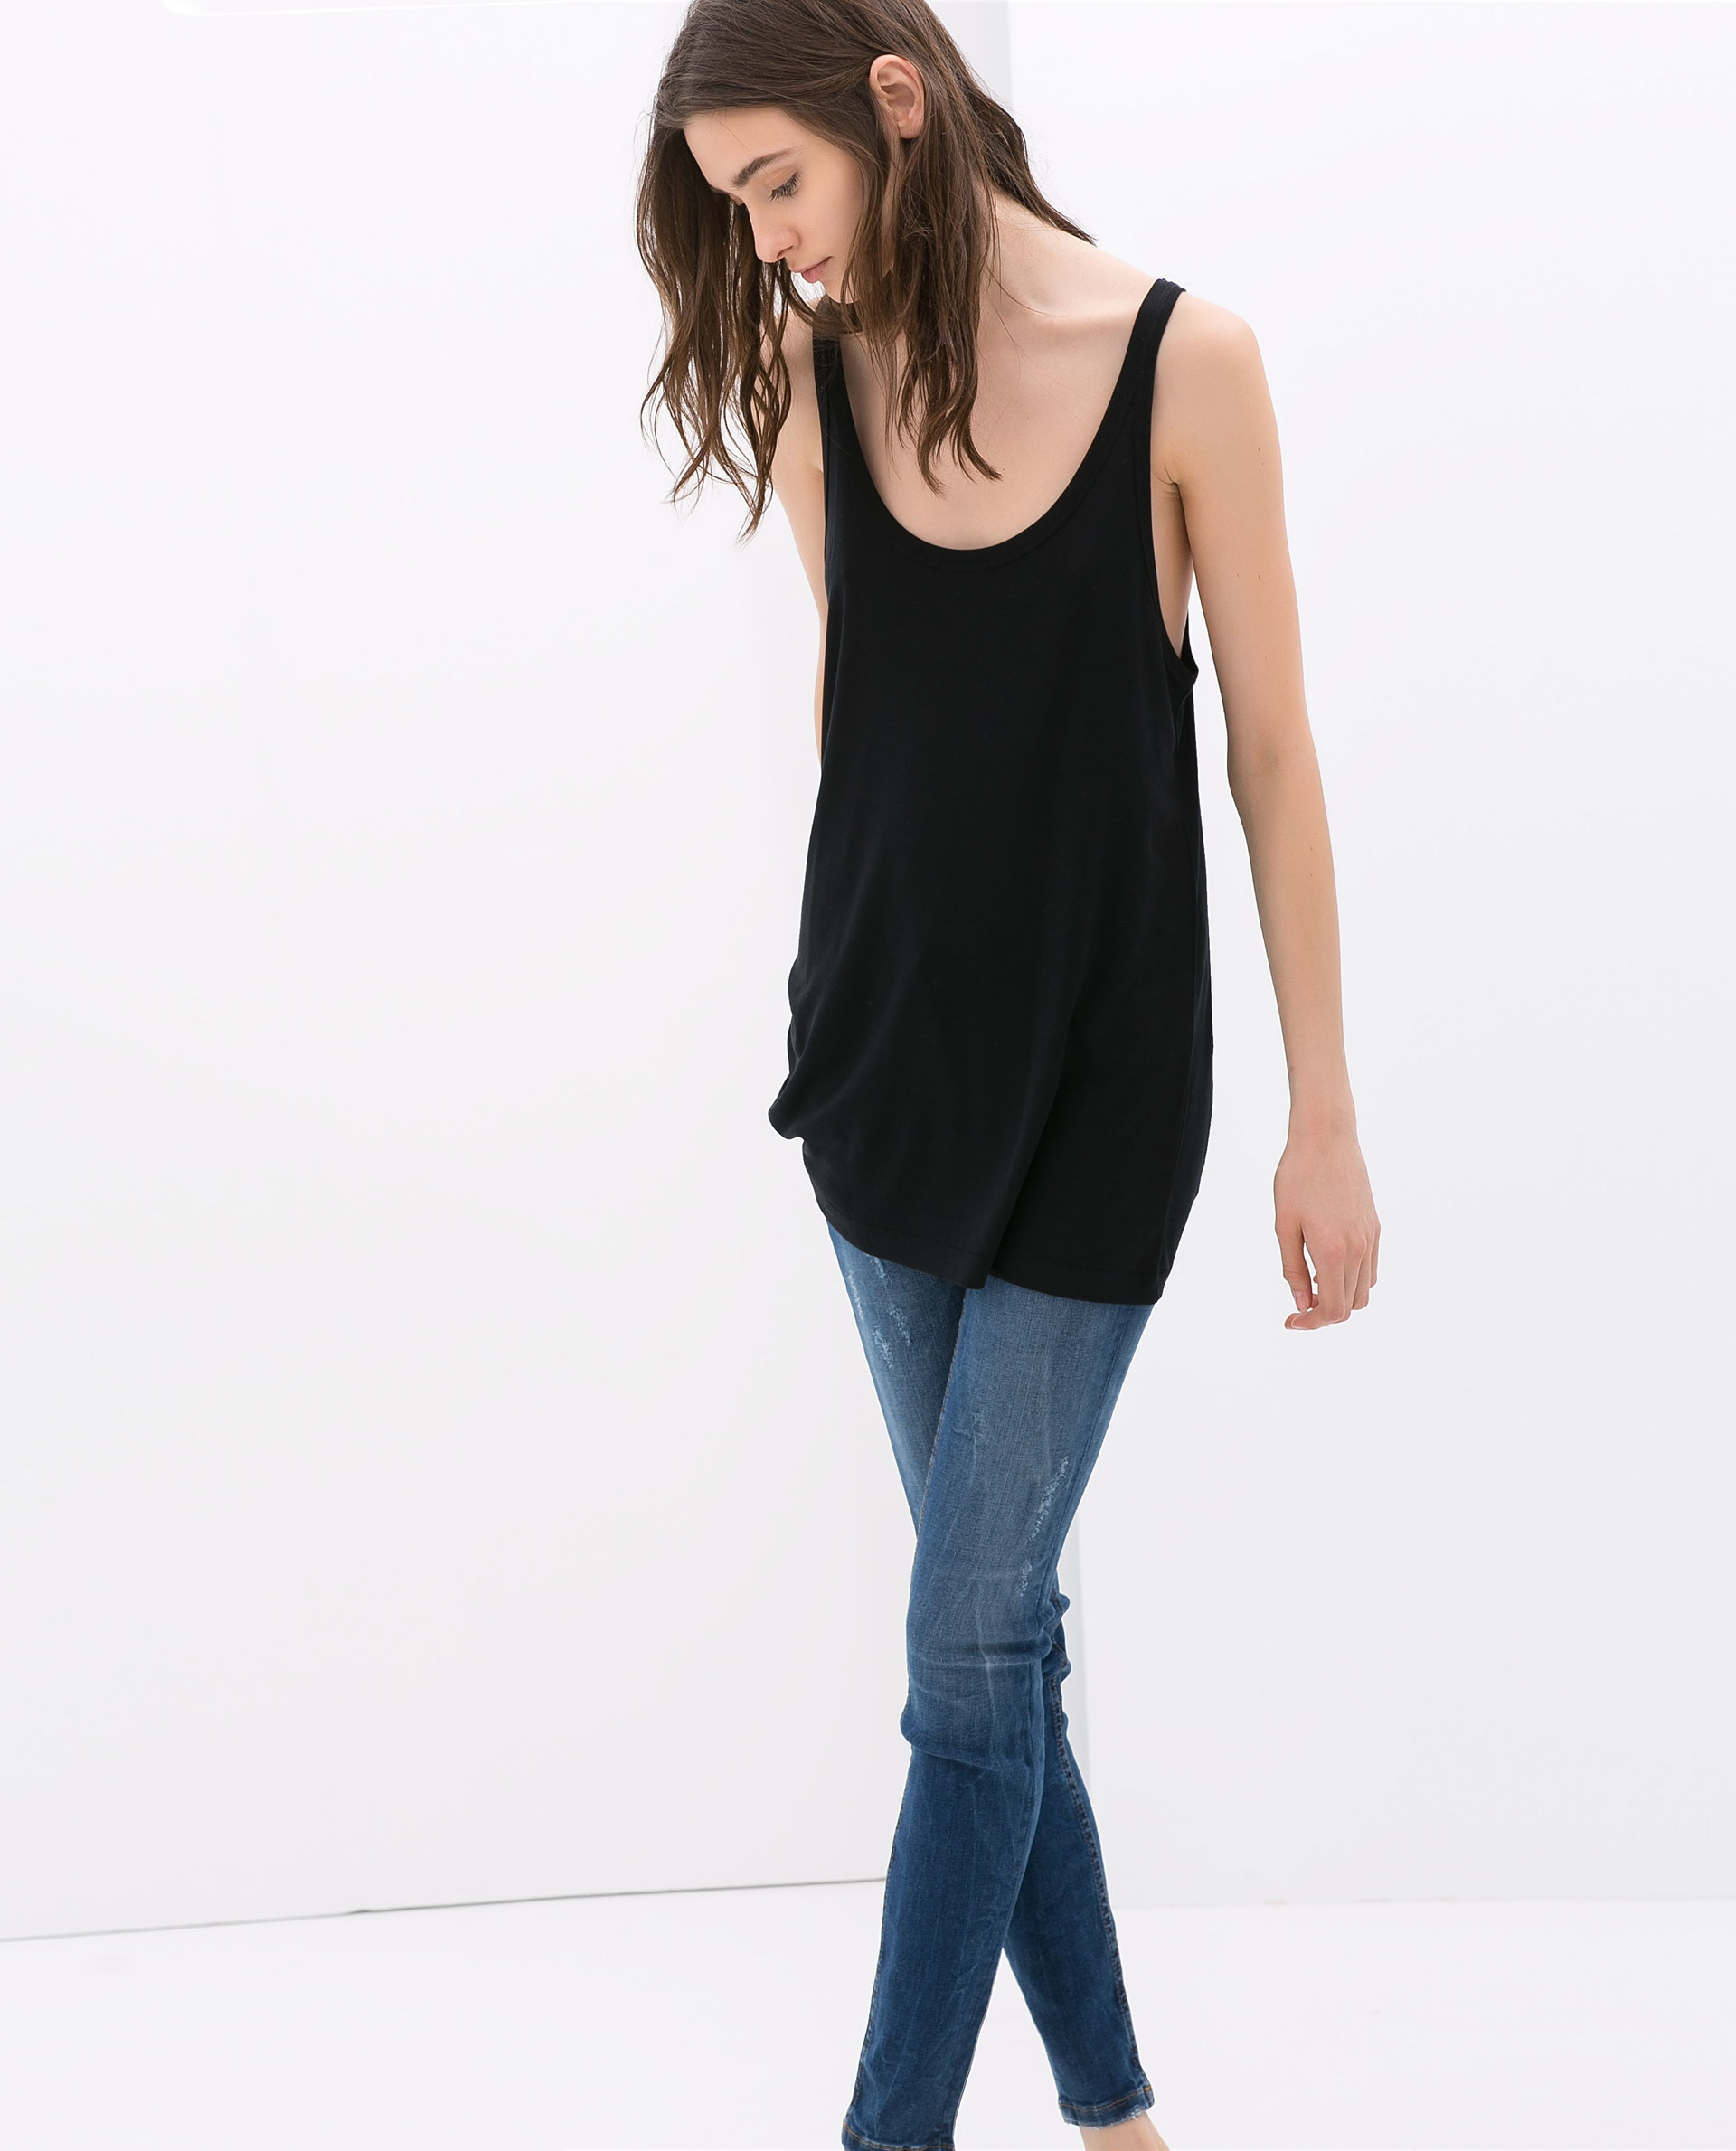 zara_long_tank_top_women_black_thecolorharmonydotcom